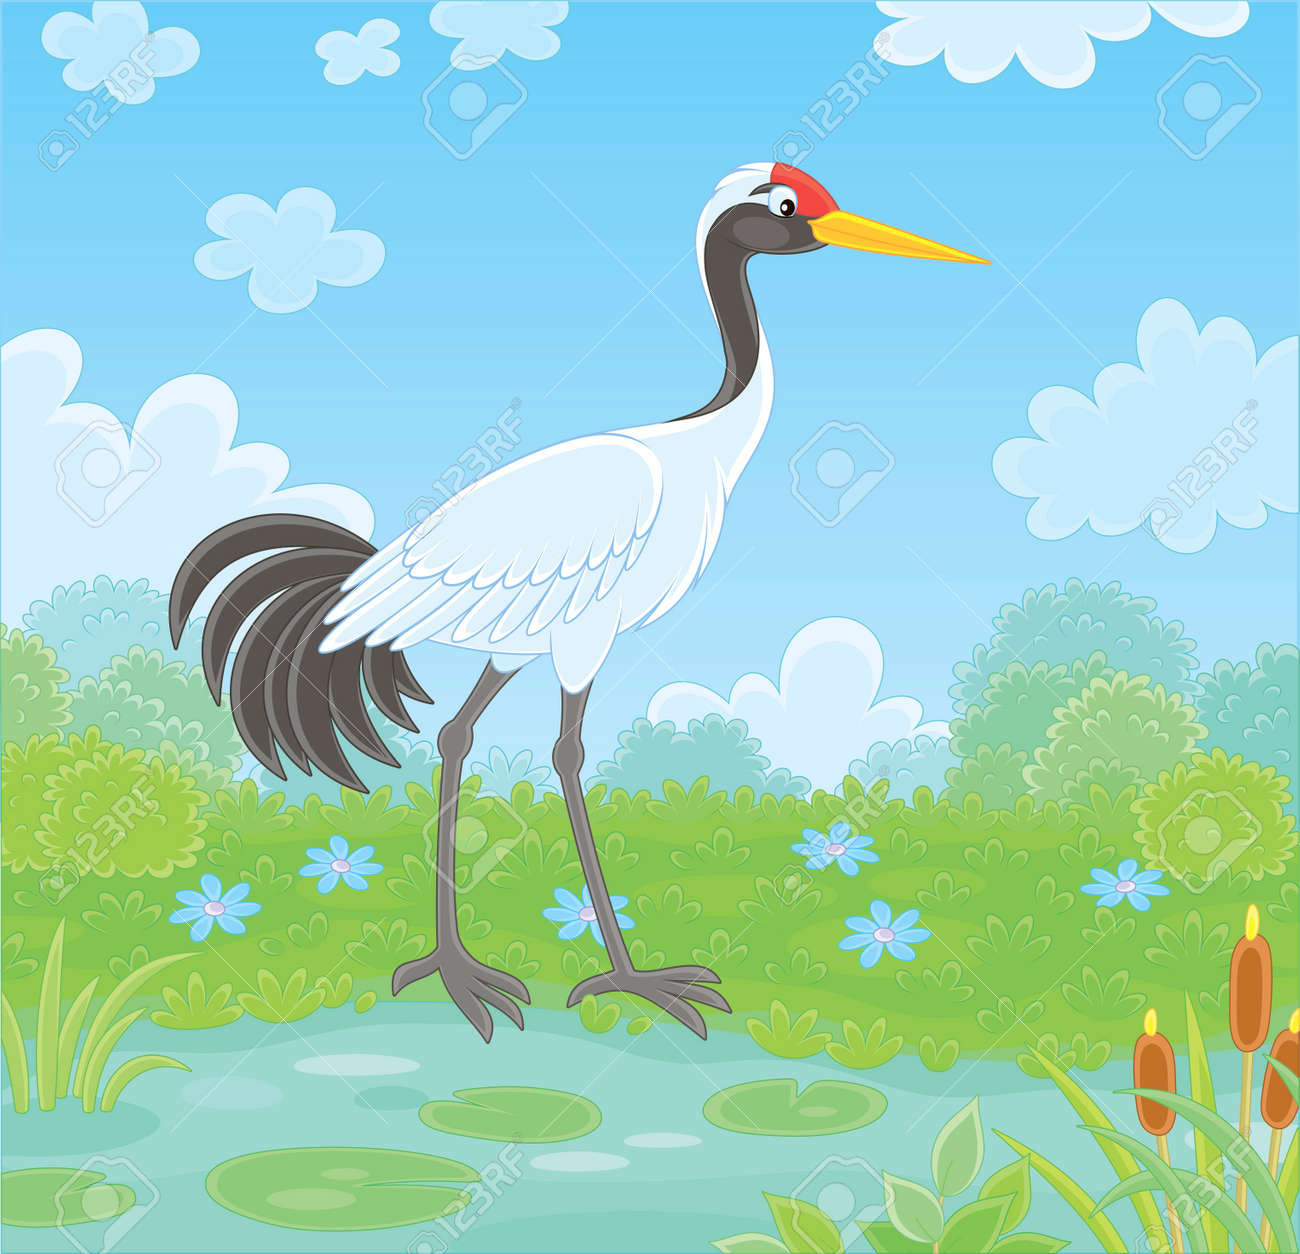 Red Crowned Crane Bird By A Small Lake Among Cane Grass And Royalty Free Cliparts Vectors And Stock Illustration Image 125469353 Bald eagle logo, cartoon eagle, animals, carnivoran, vertebrate png. red crowned crane bird by a small lake among cane grass and